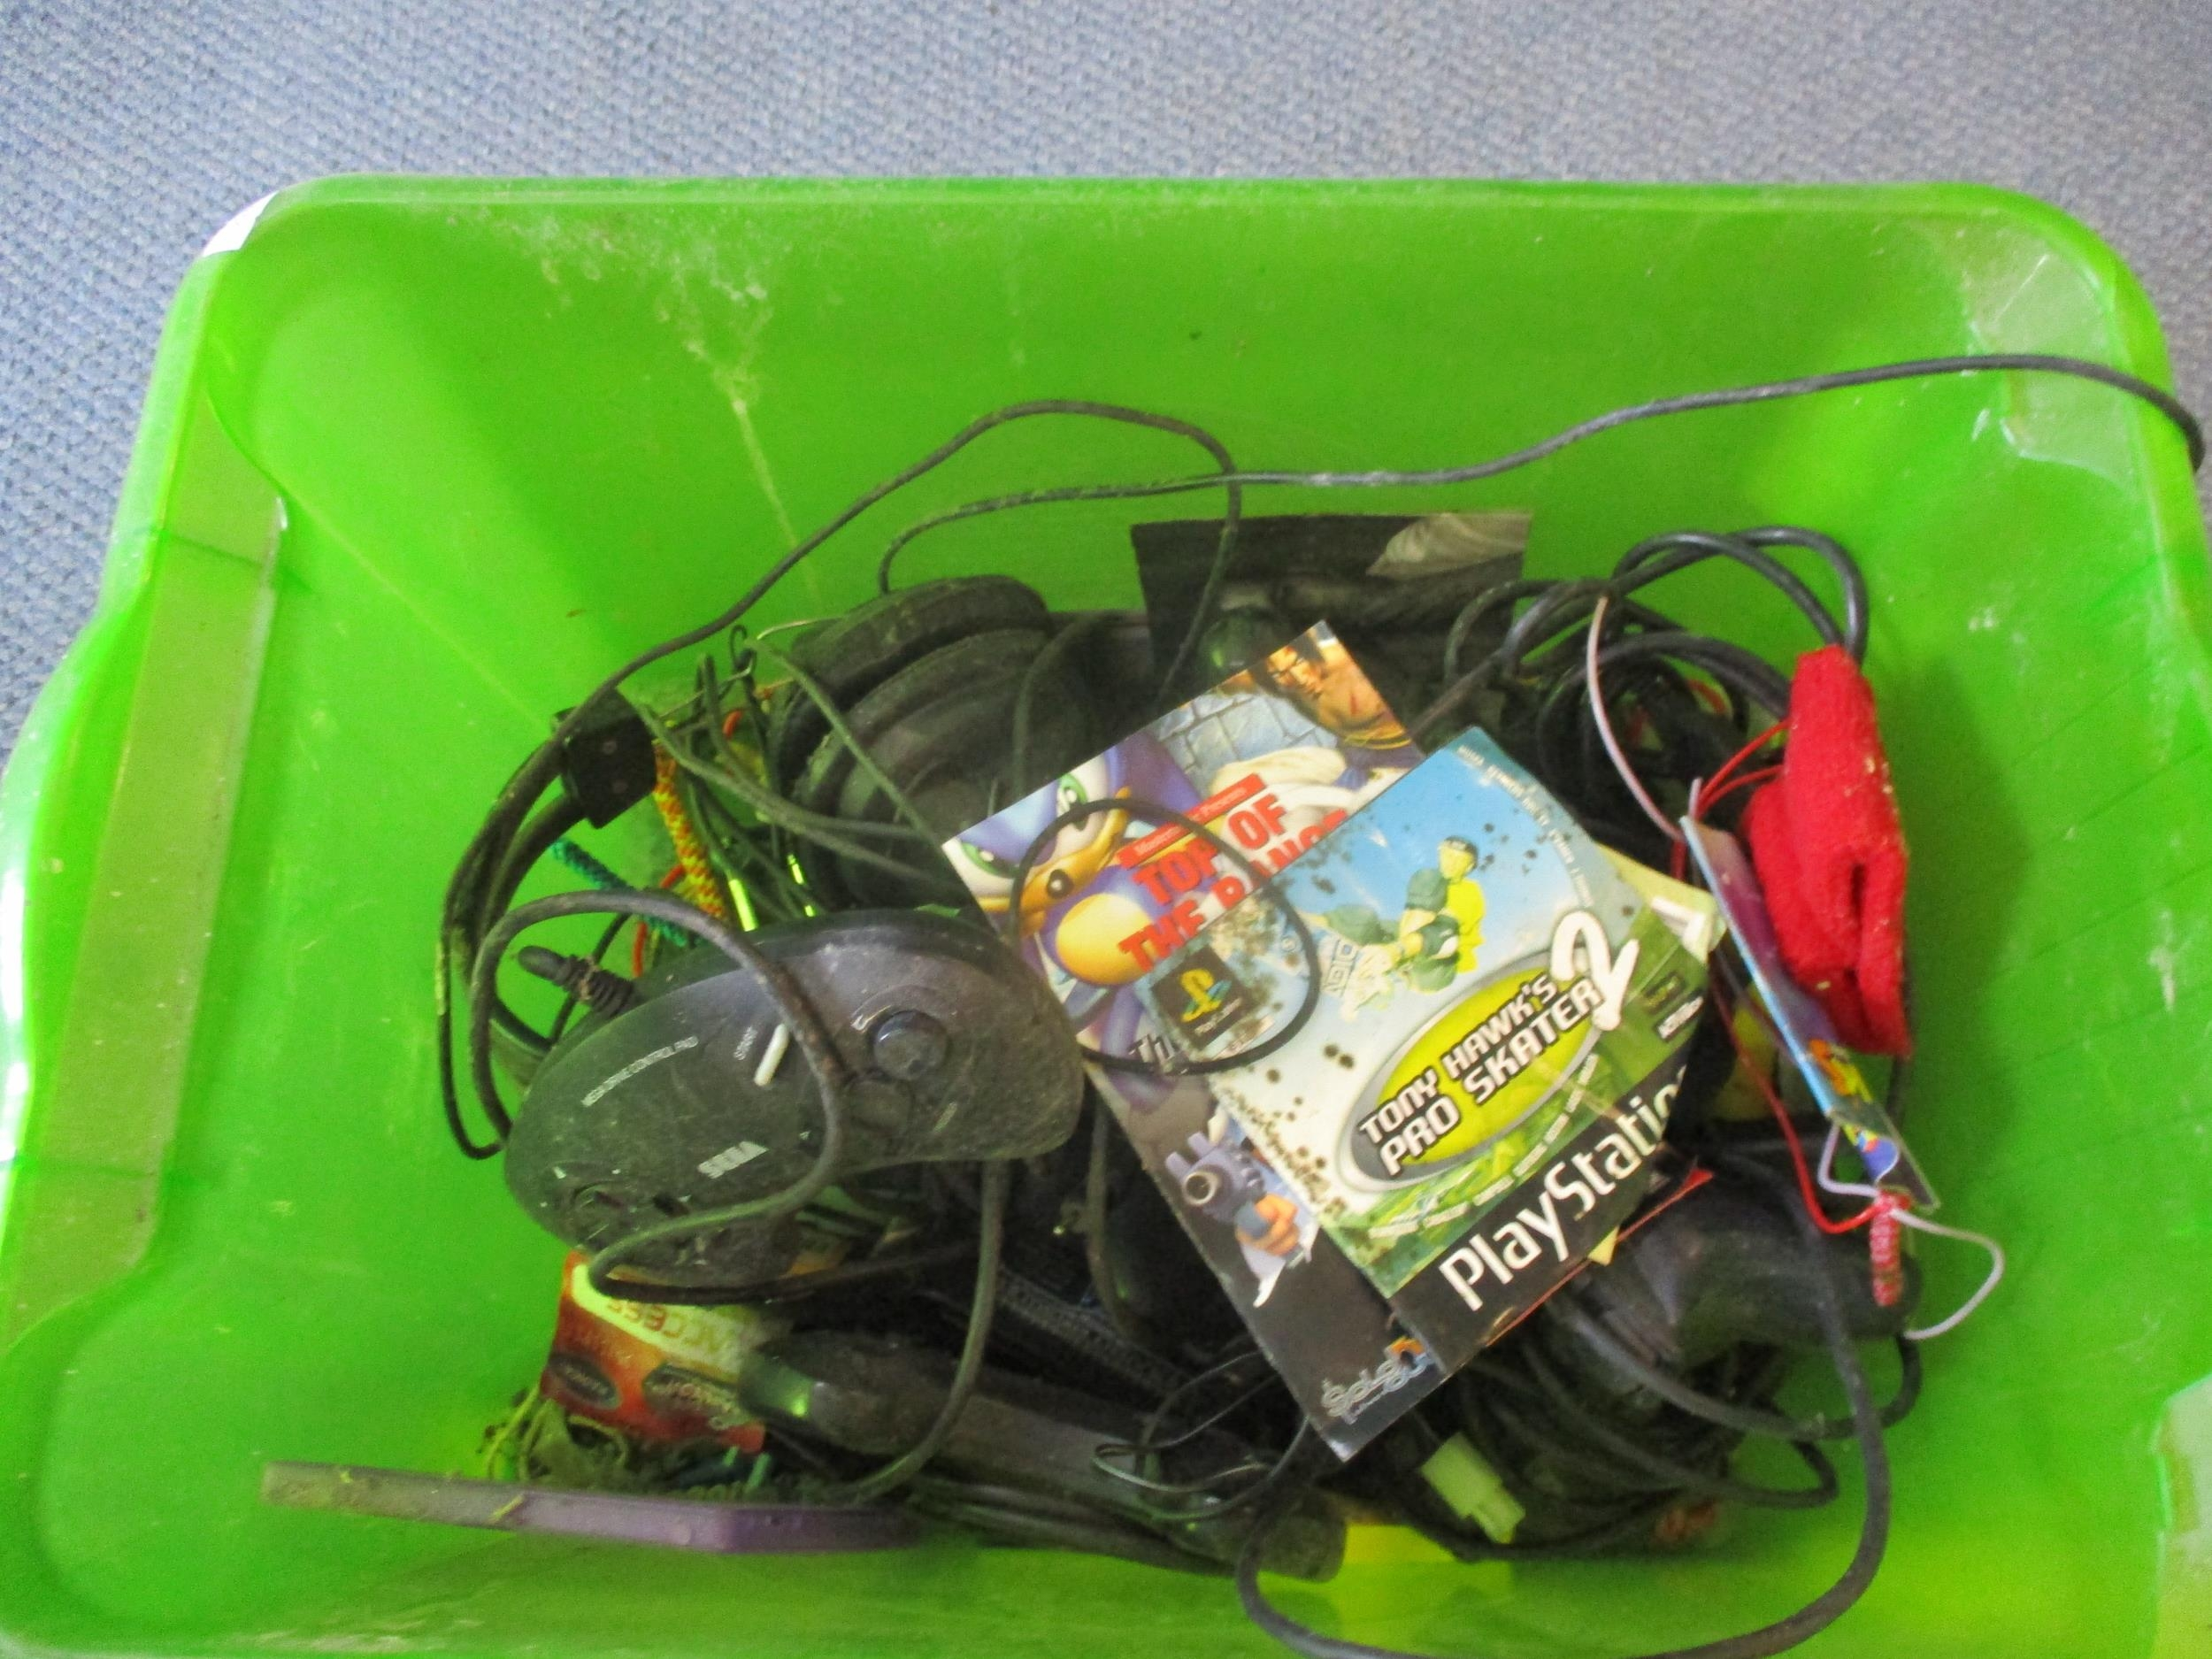 Gaming equipment A/F to include a Sega 16-bit Megadrive console, various games A/F, an ipod A/F - Image 2 of 5